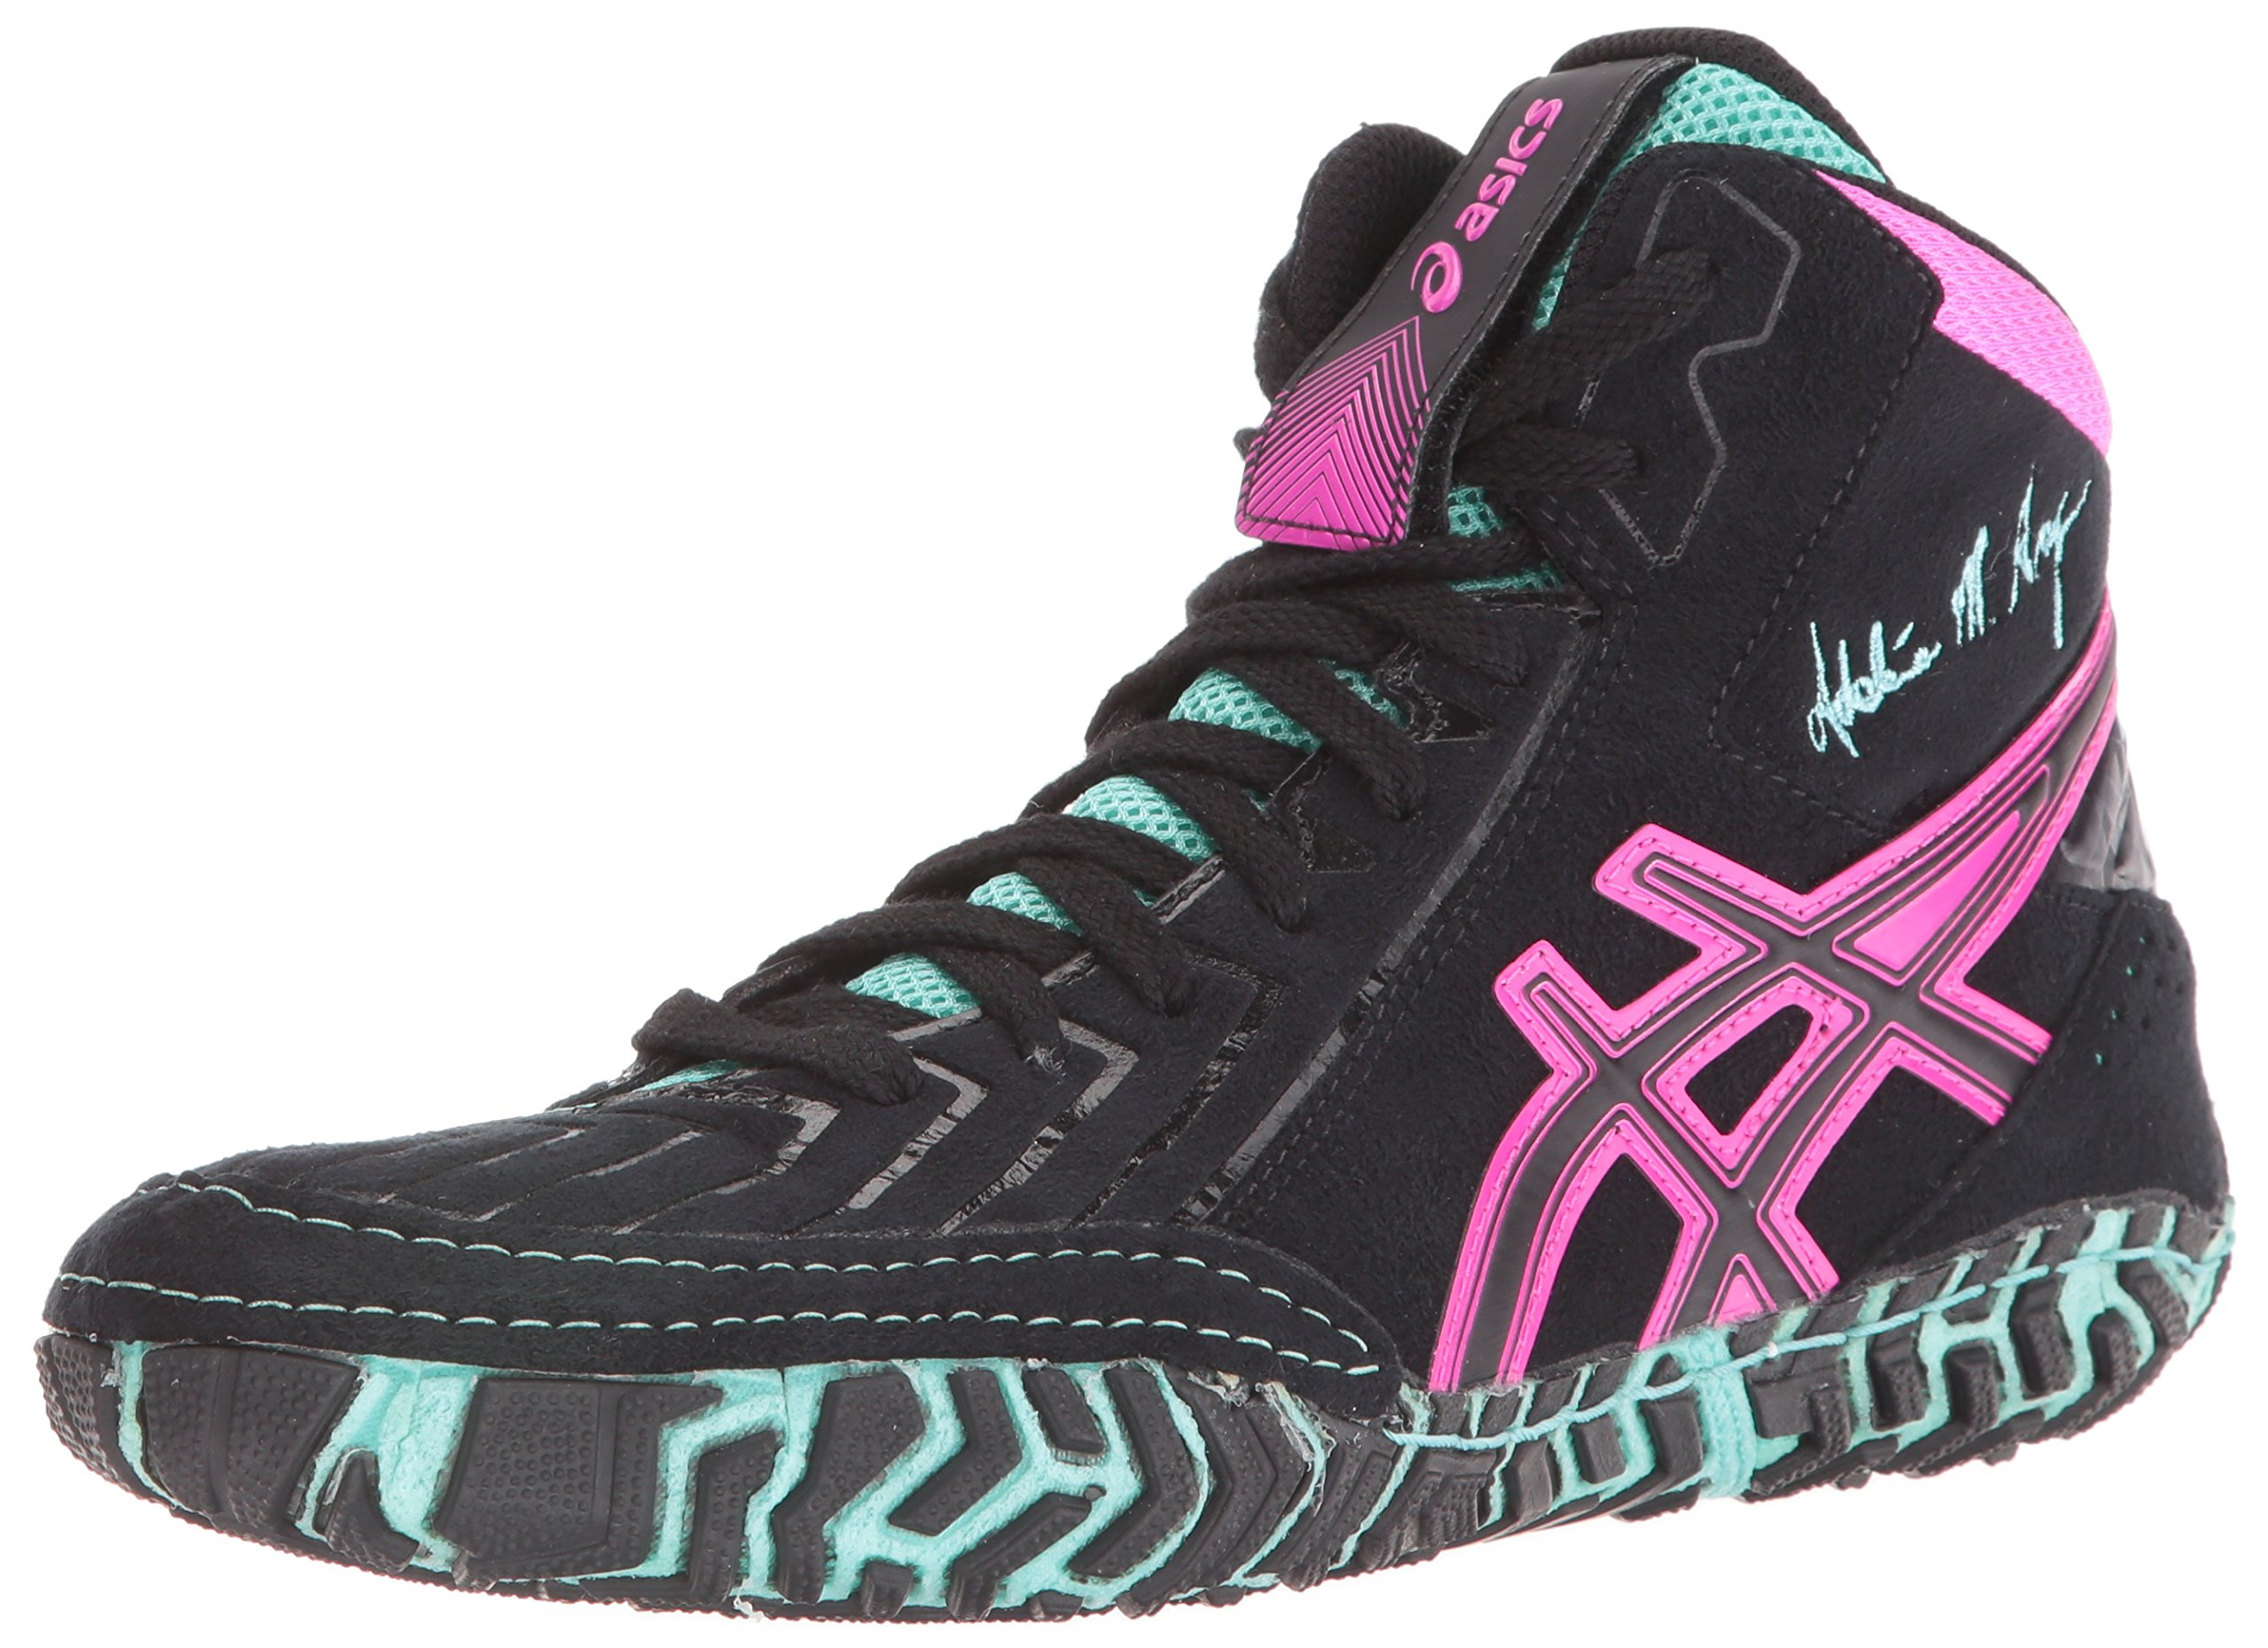 ASICS Men's Aggressor 3 L.E. AG Wrestling Shoe, Black/Onyx/Pink Glow, 7 M US